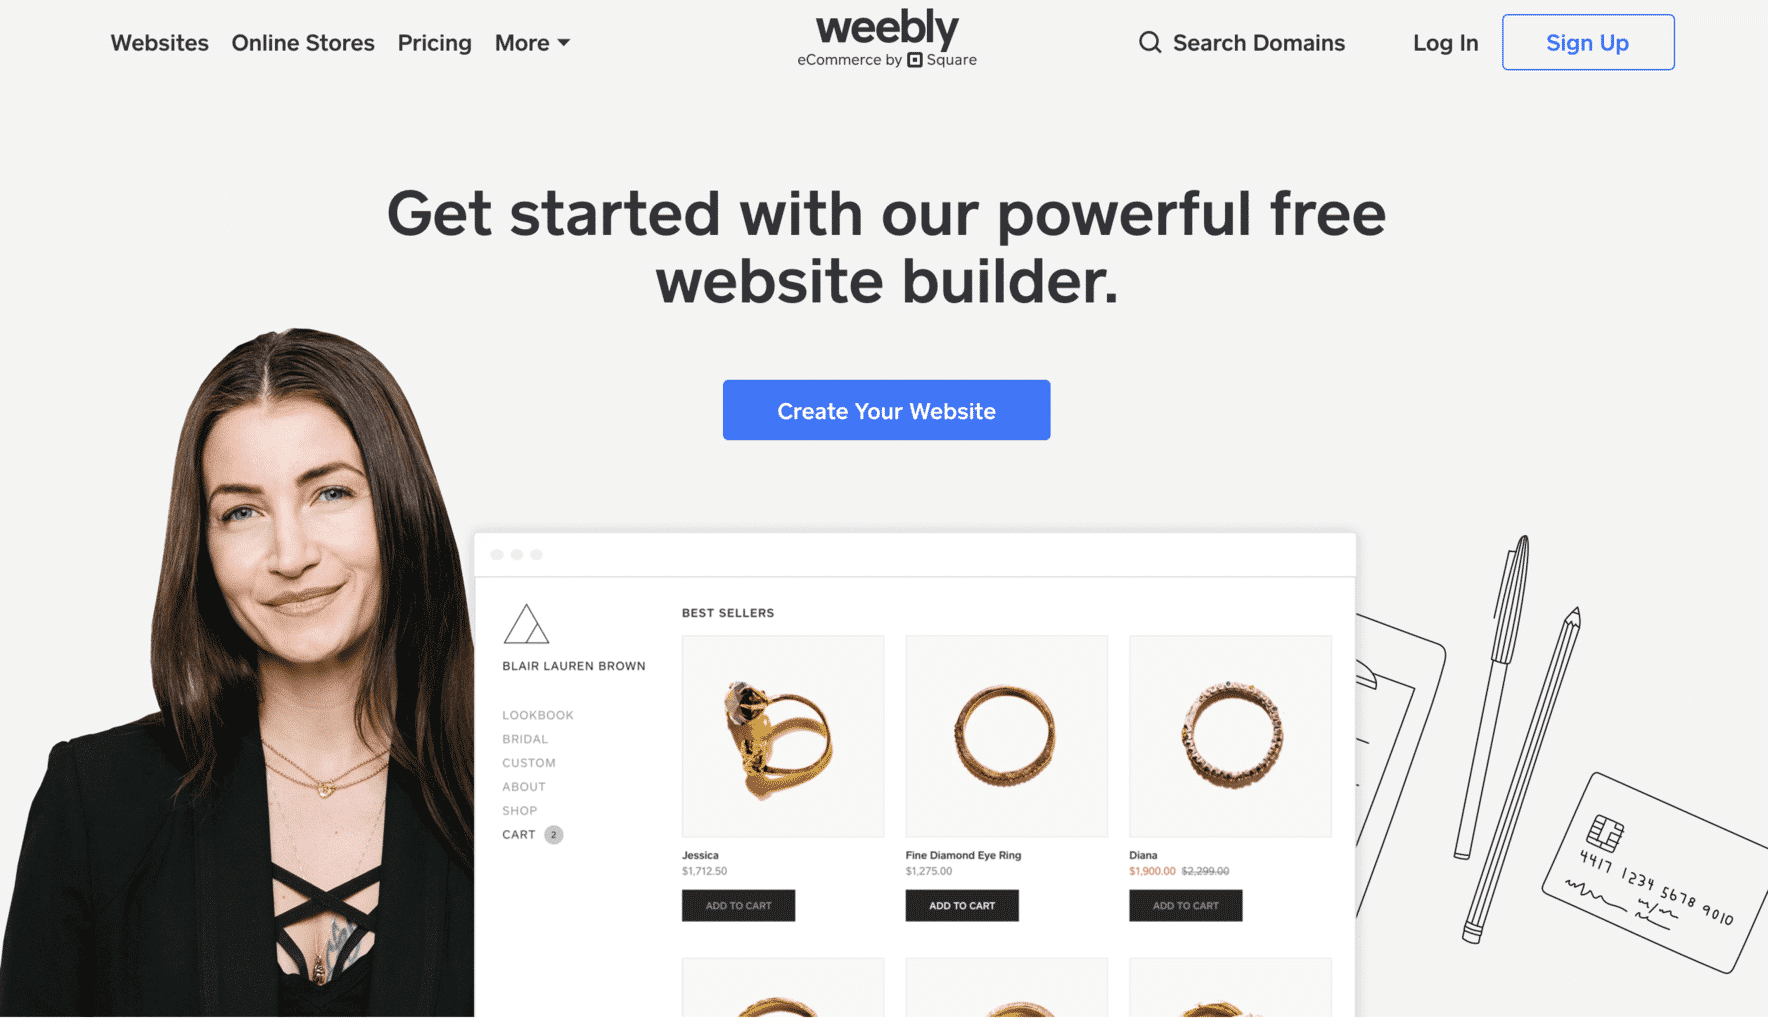 weebly CMS